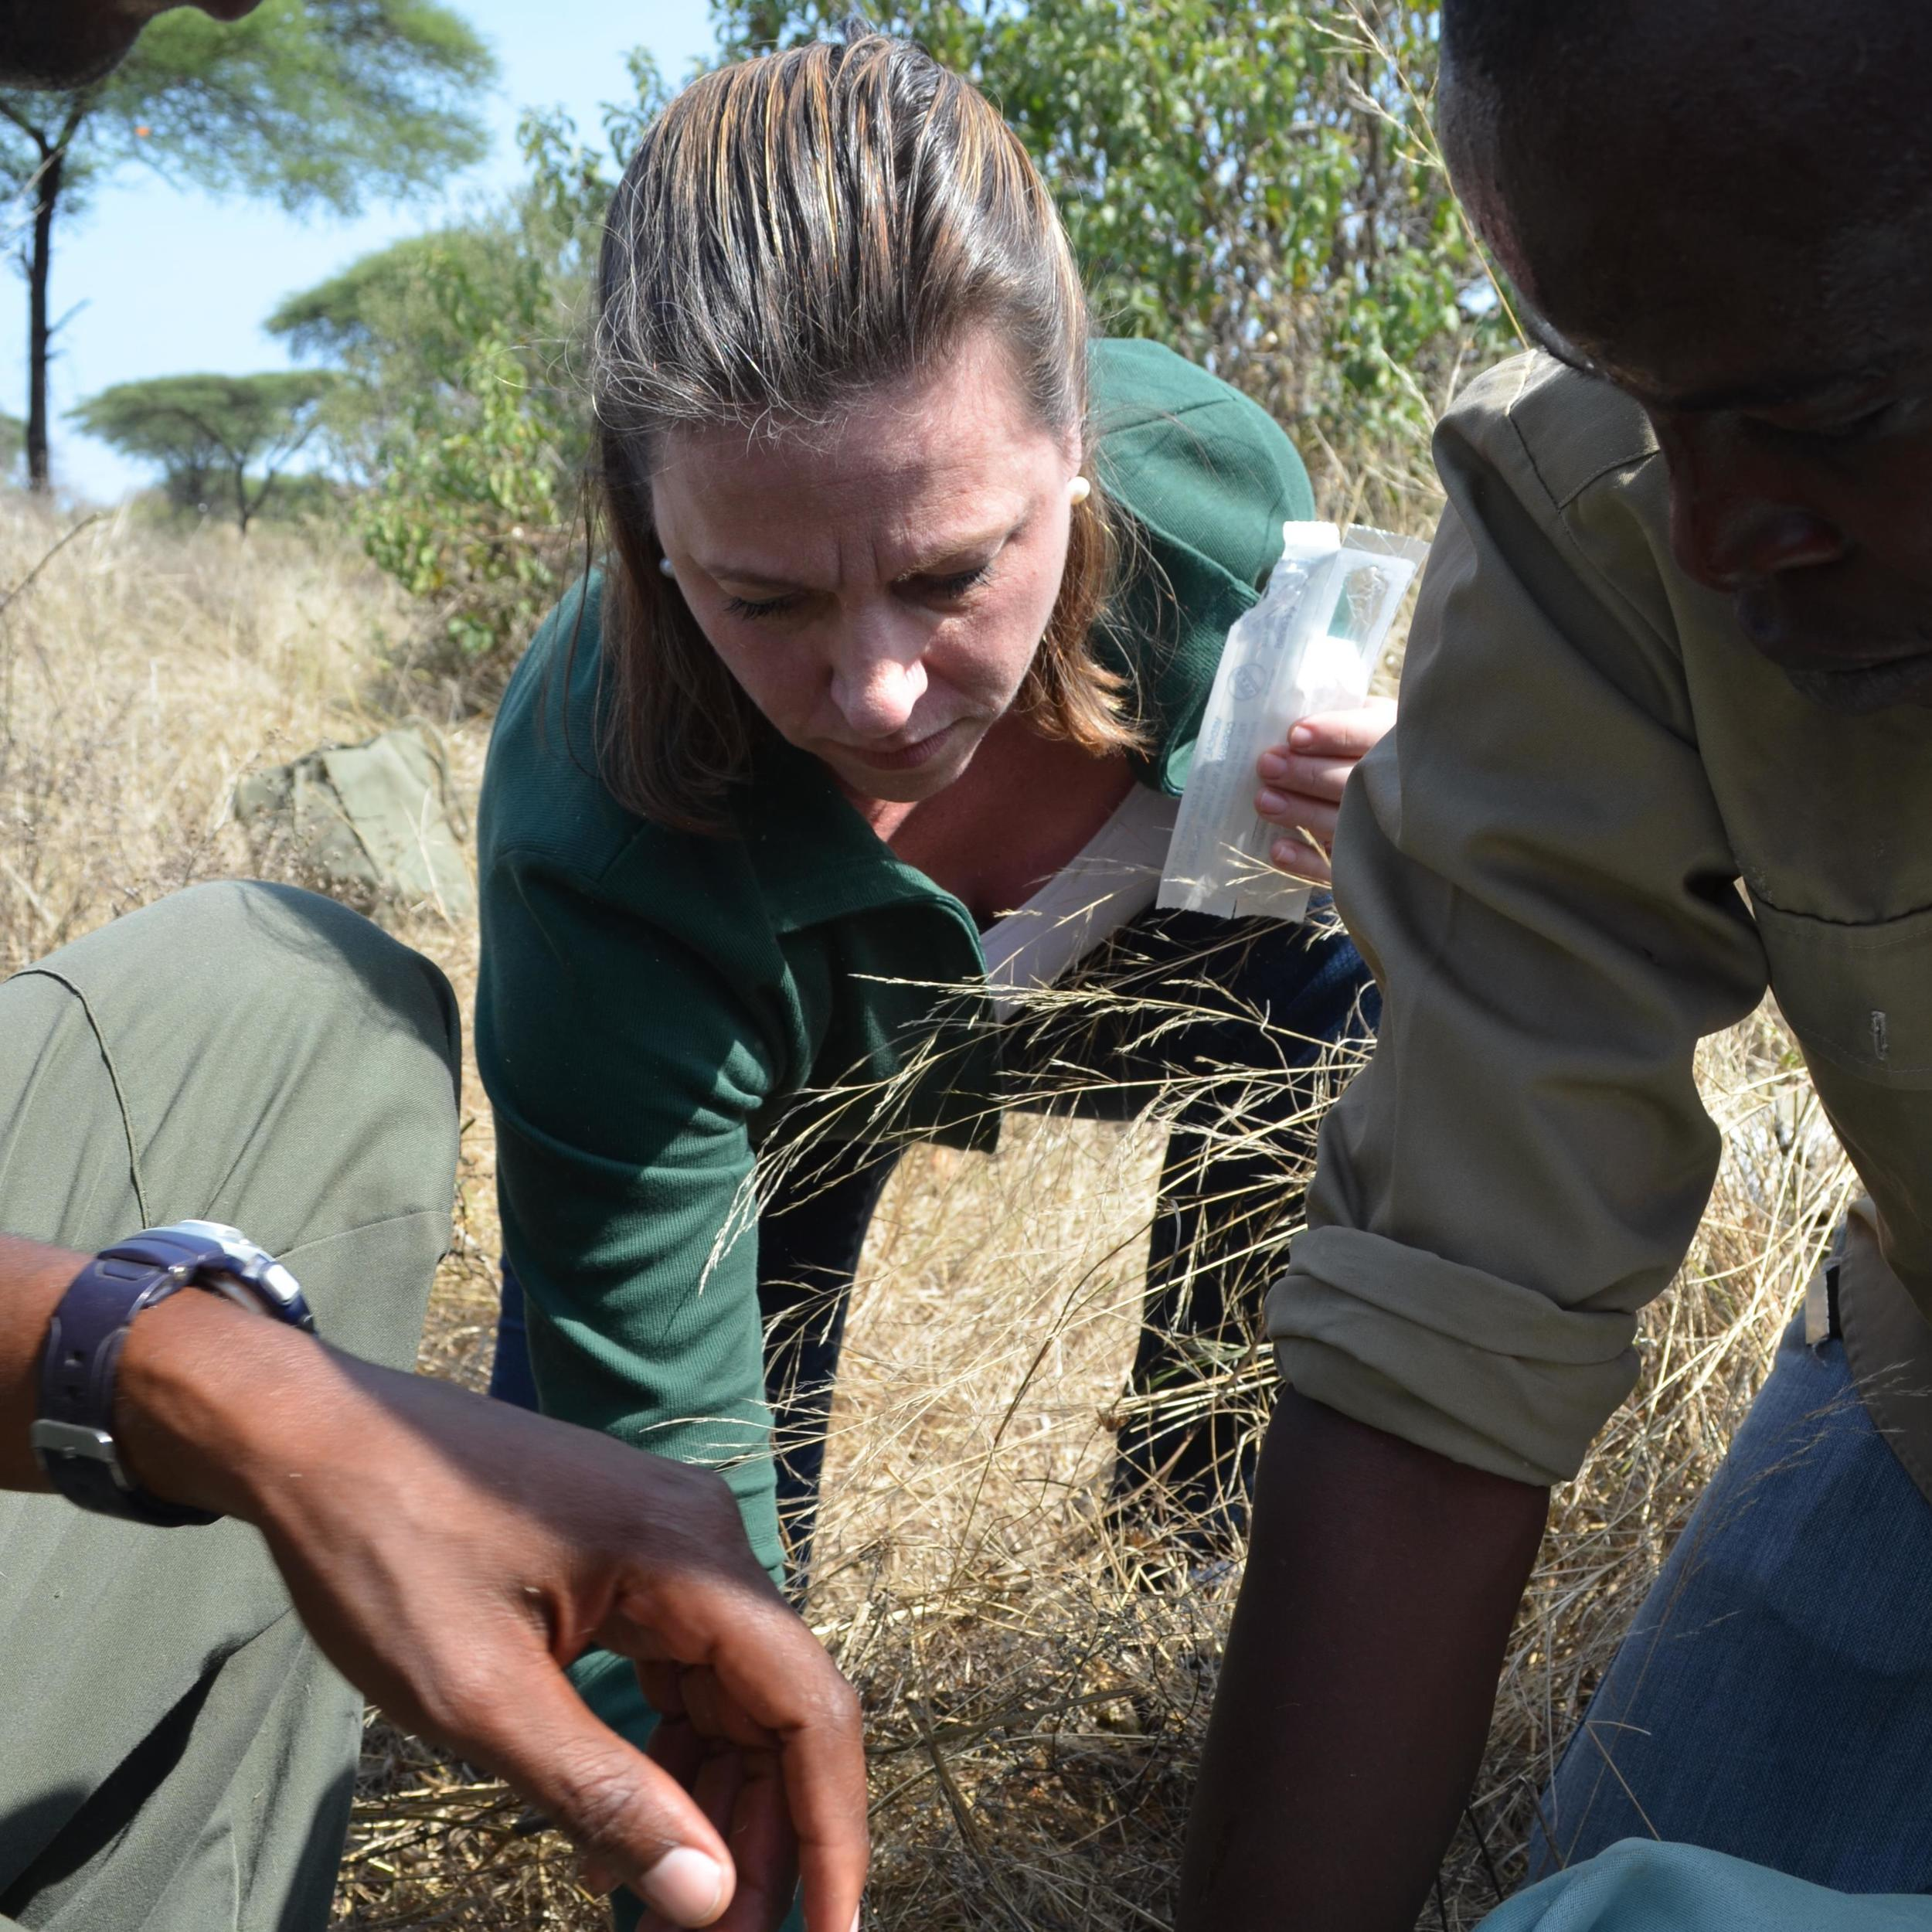 Jonna Mazet assisting Ruaha National Park and Sokoine University of Agriculture veterinarians with a giraffe immobilization.  Dr. Mazet has been integrating animal, environmental and human health in projects like HALI throughout the world,  building global foundations for One Health research and practice.